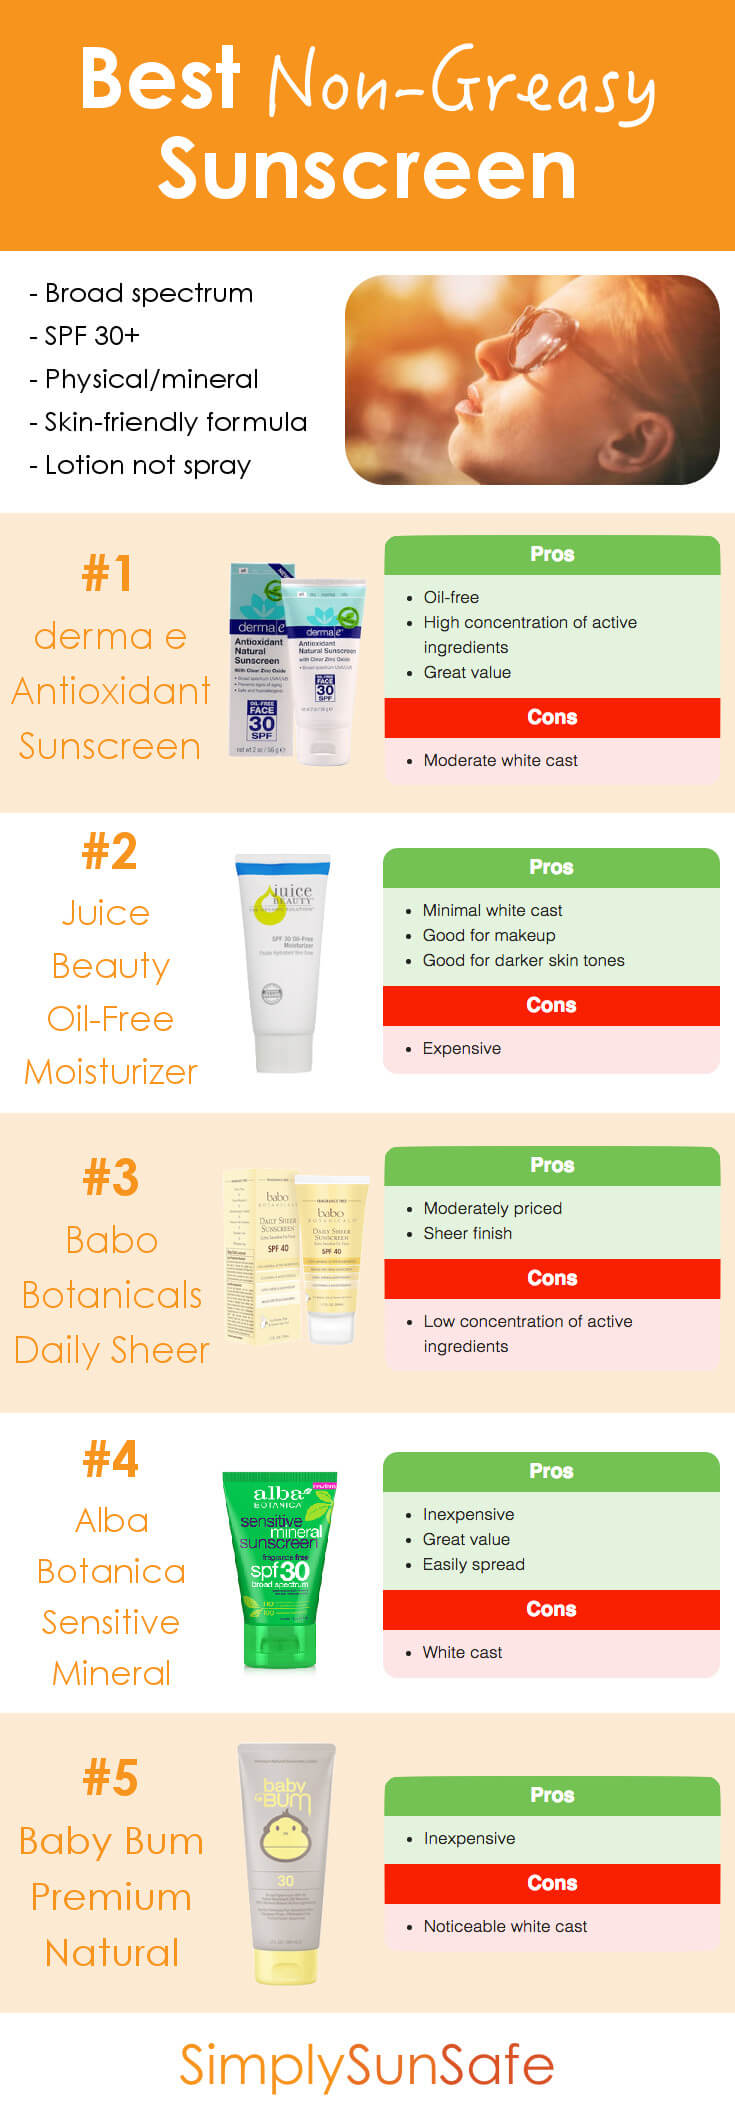 Best Non-Greasy Sunscreen Pinterest